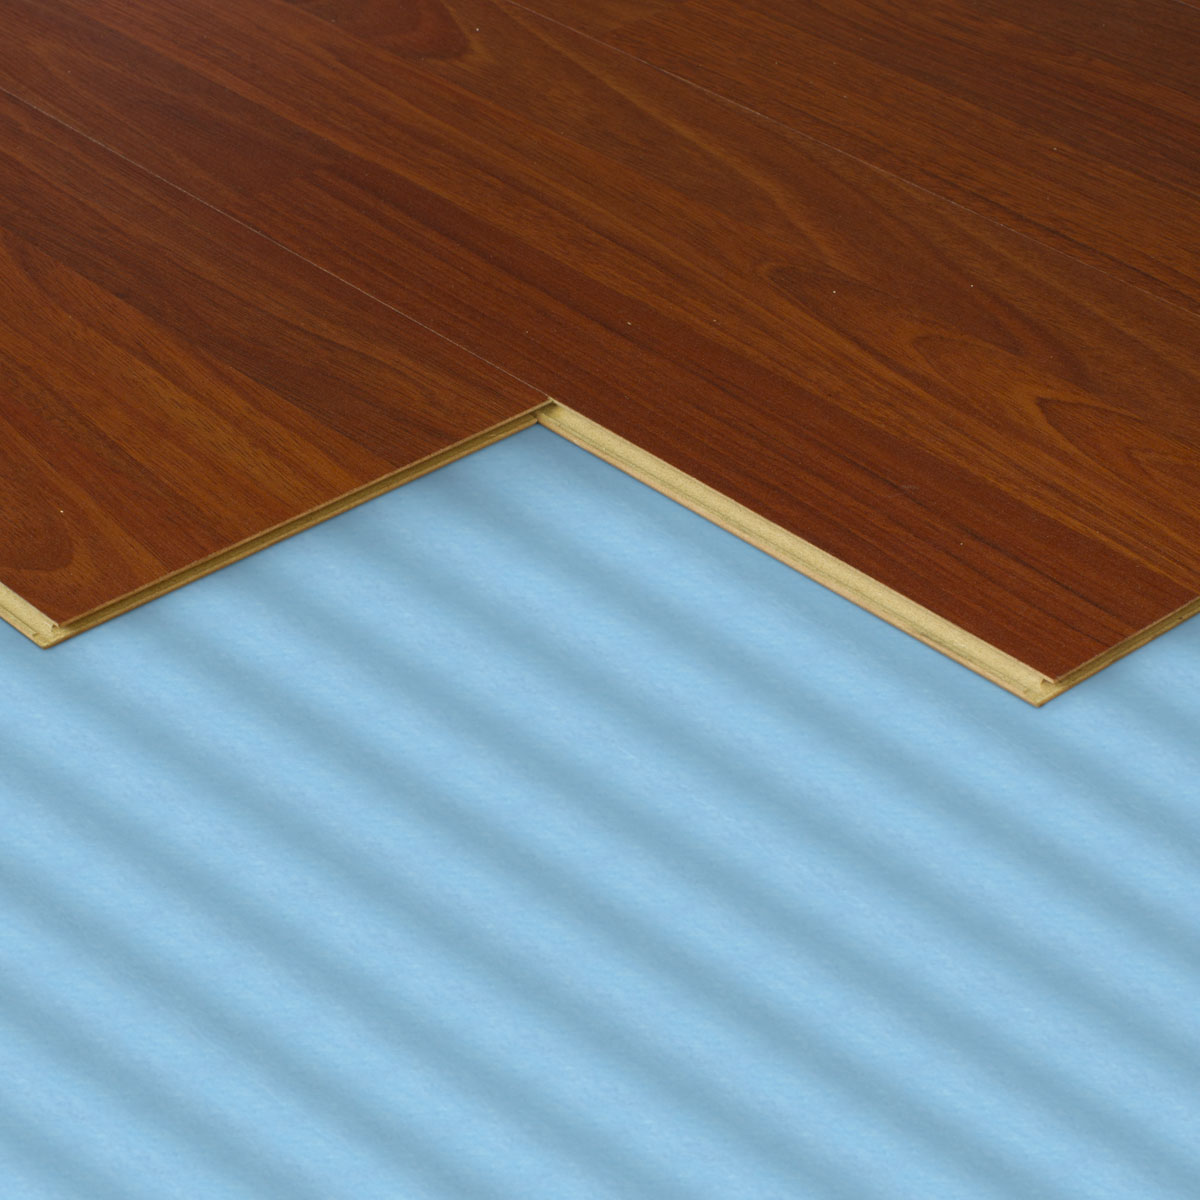 3 in 1 UNDERLAYMENT Laminate Foam 3mm 200 sqft Floor  eBay